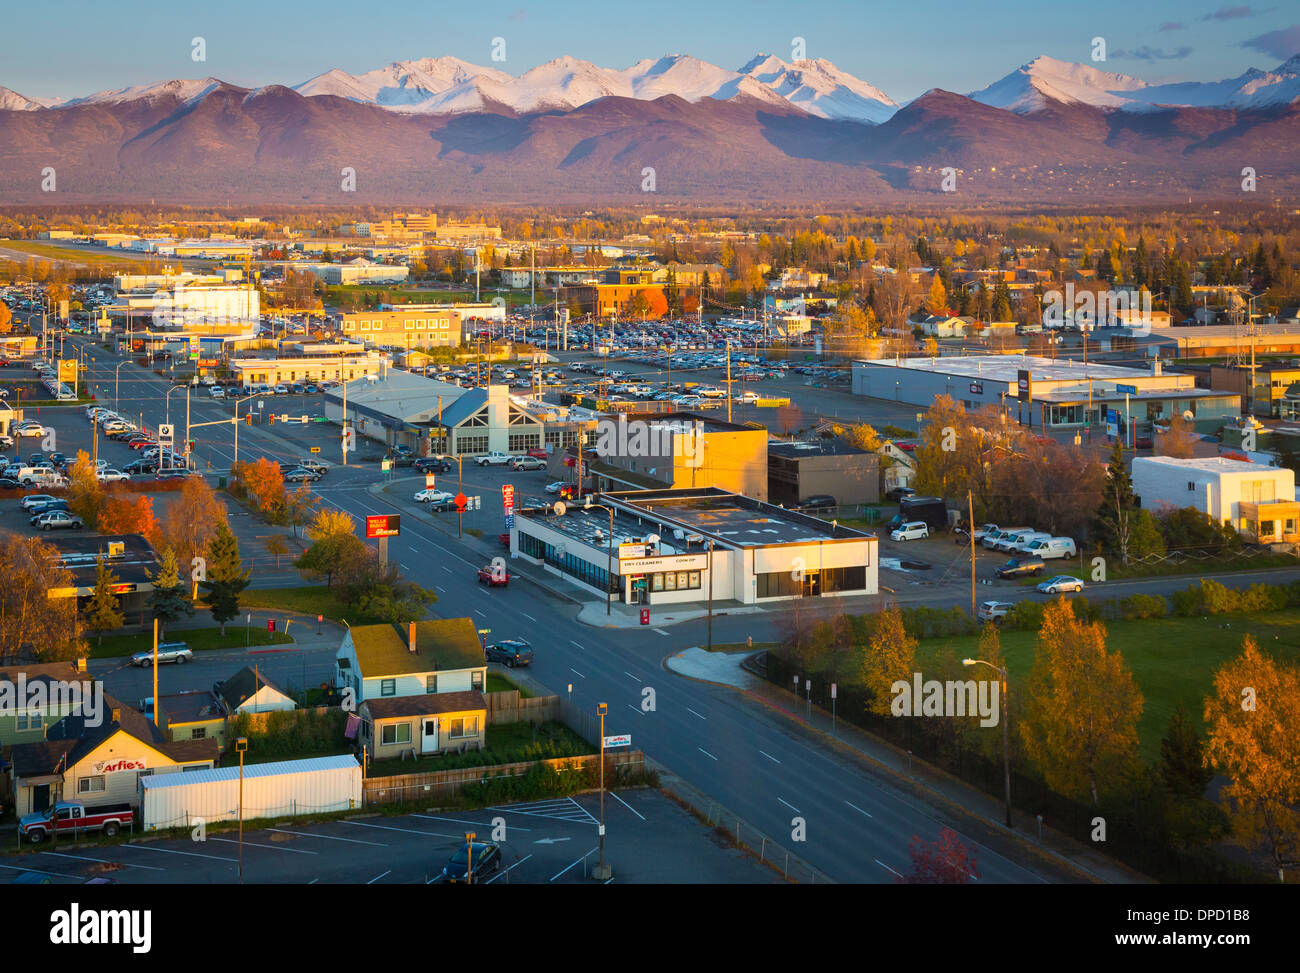 Downtown Anchorage in Alaska - Stock Image